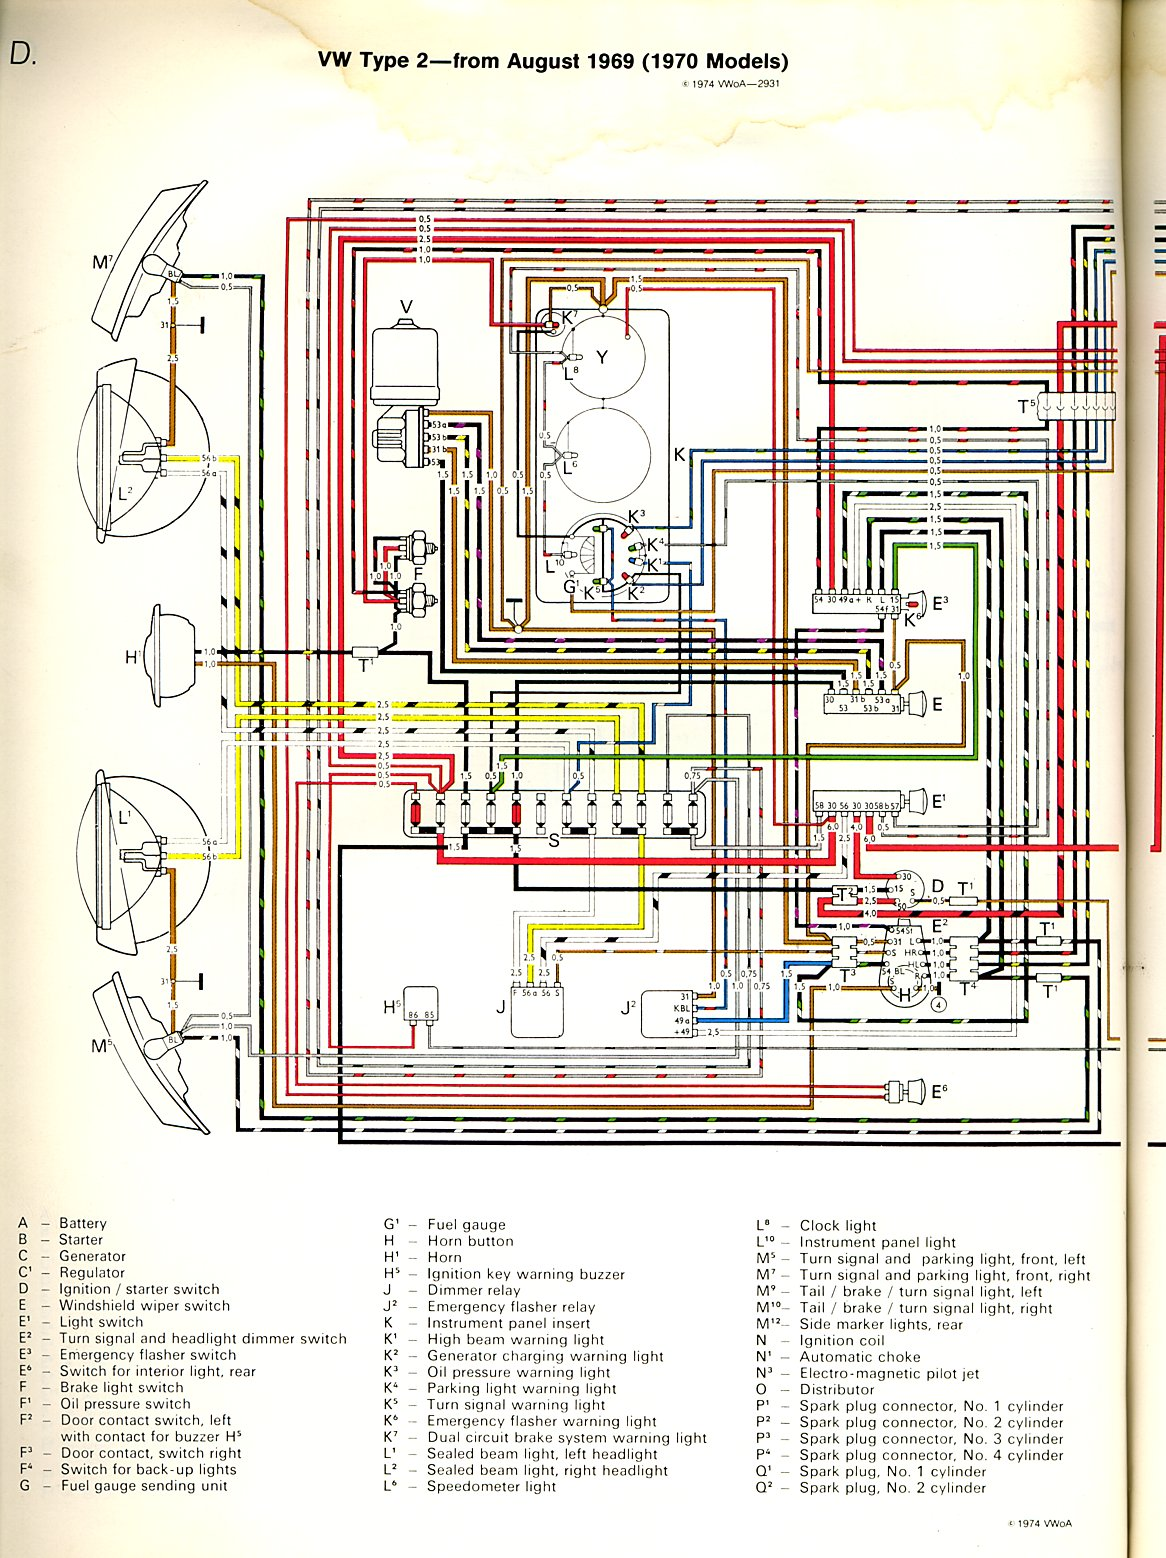 baybus_70a bus wiring diagram vw wiring harness diagram \u2022 wiring diagrams j 1968 vw bus fuse box at eliteediting.co